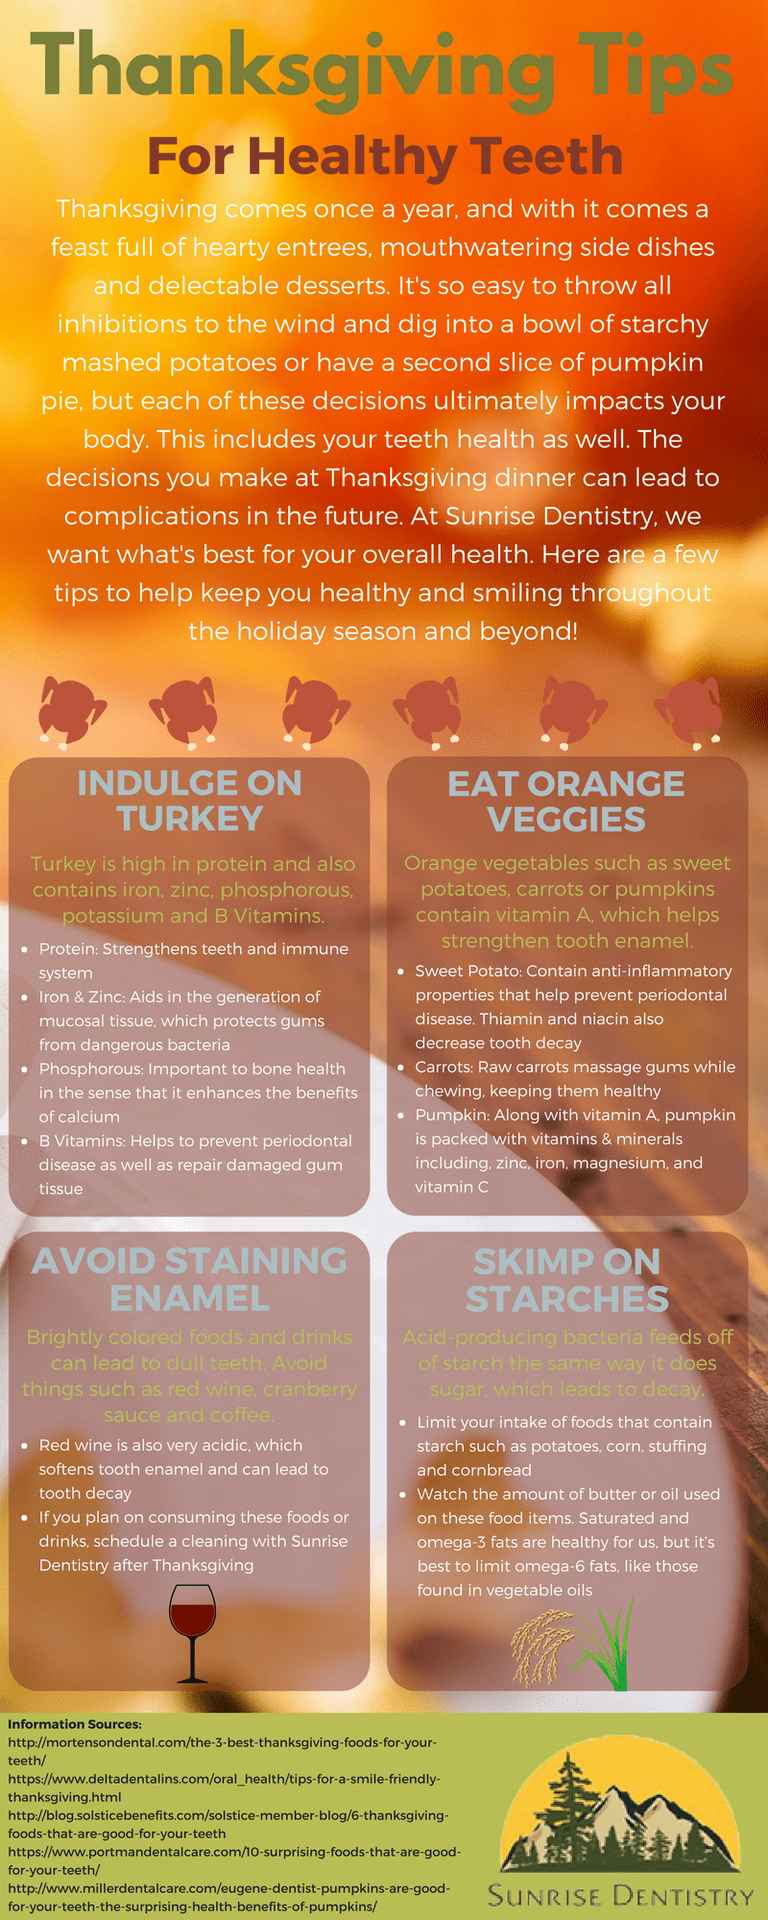 sunrisedentistry_thanksgivingtips-1